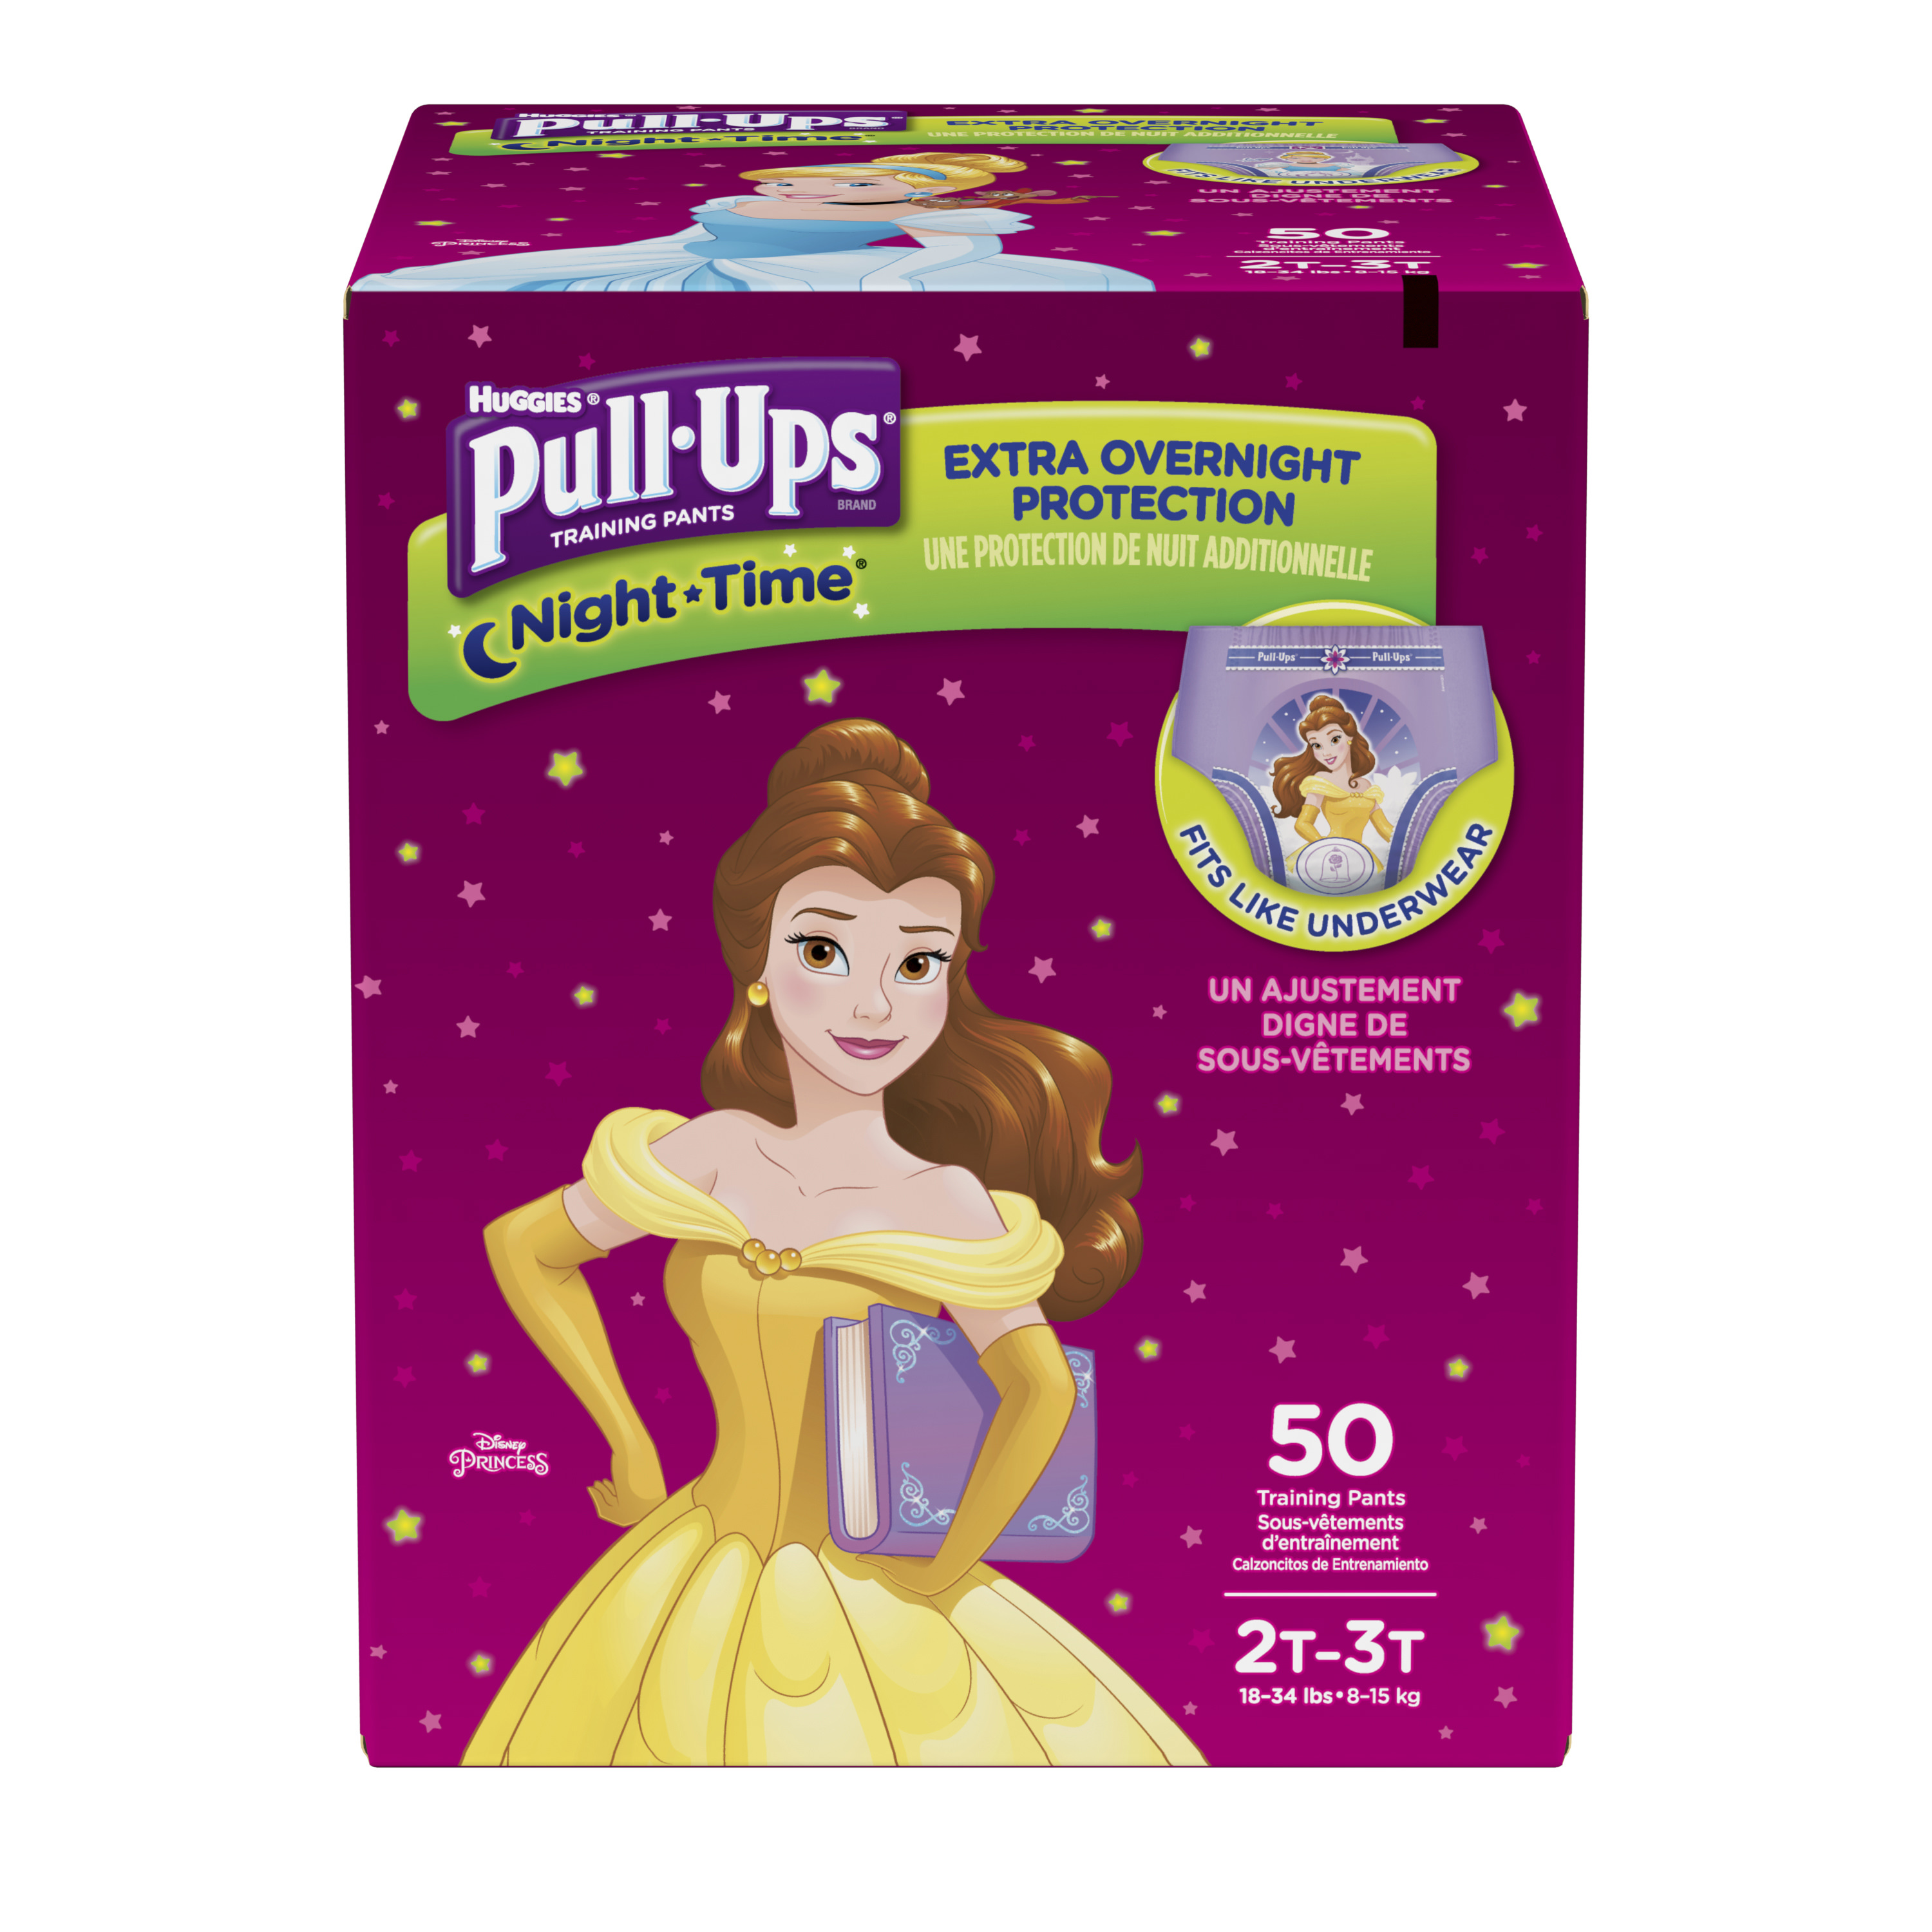 Pull-Ups Night-Time Potty Training Pants for Girls, 2T-3T (18-34 lb.), 50 Ct. (Packaging May Vary)